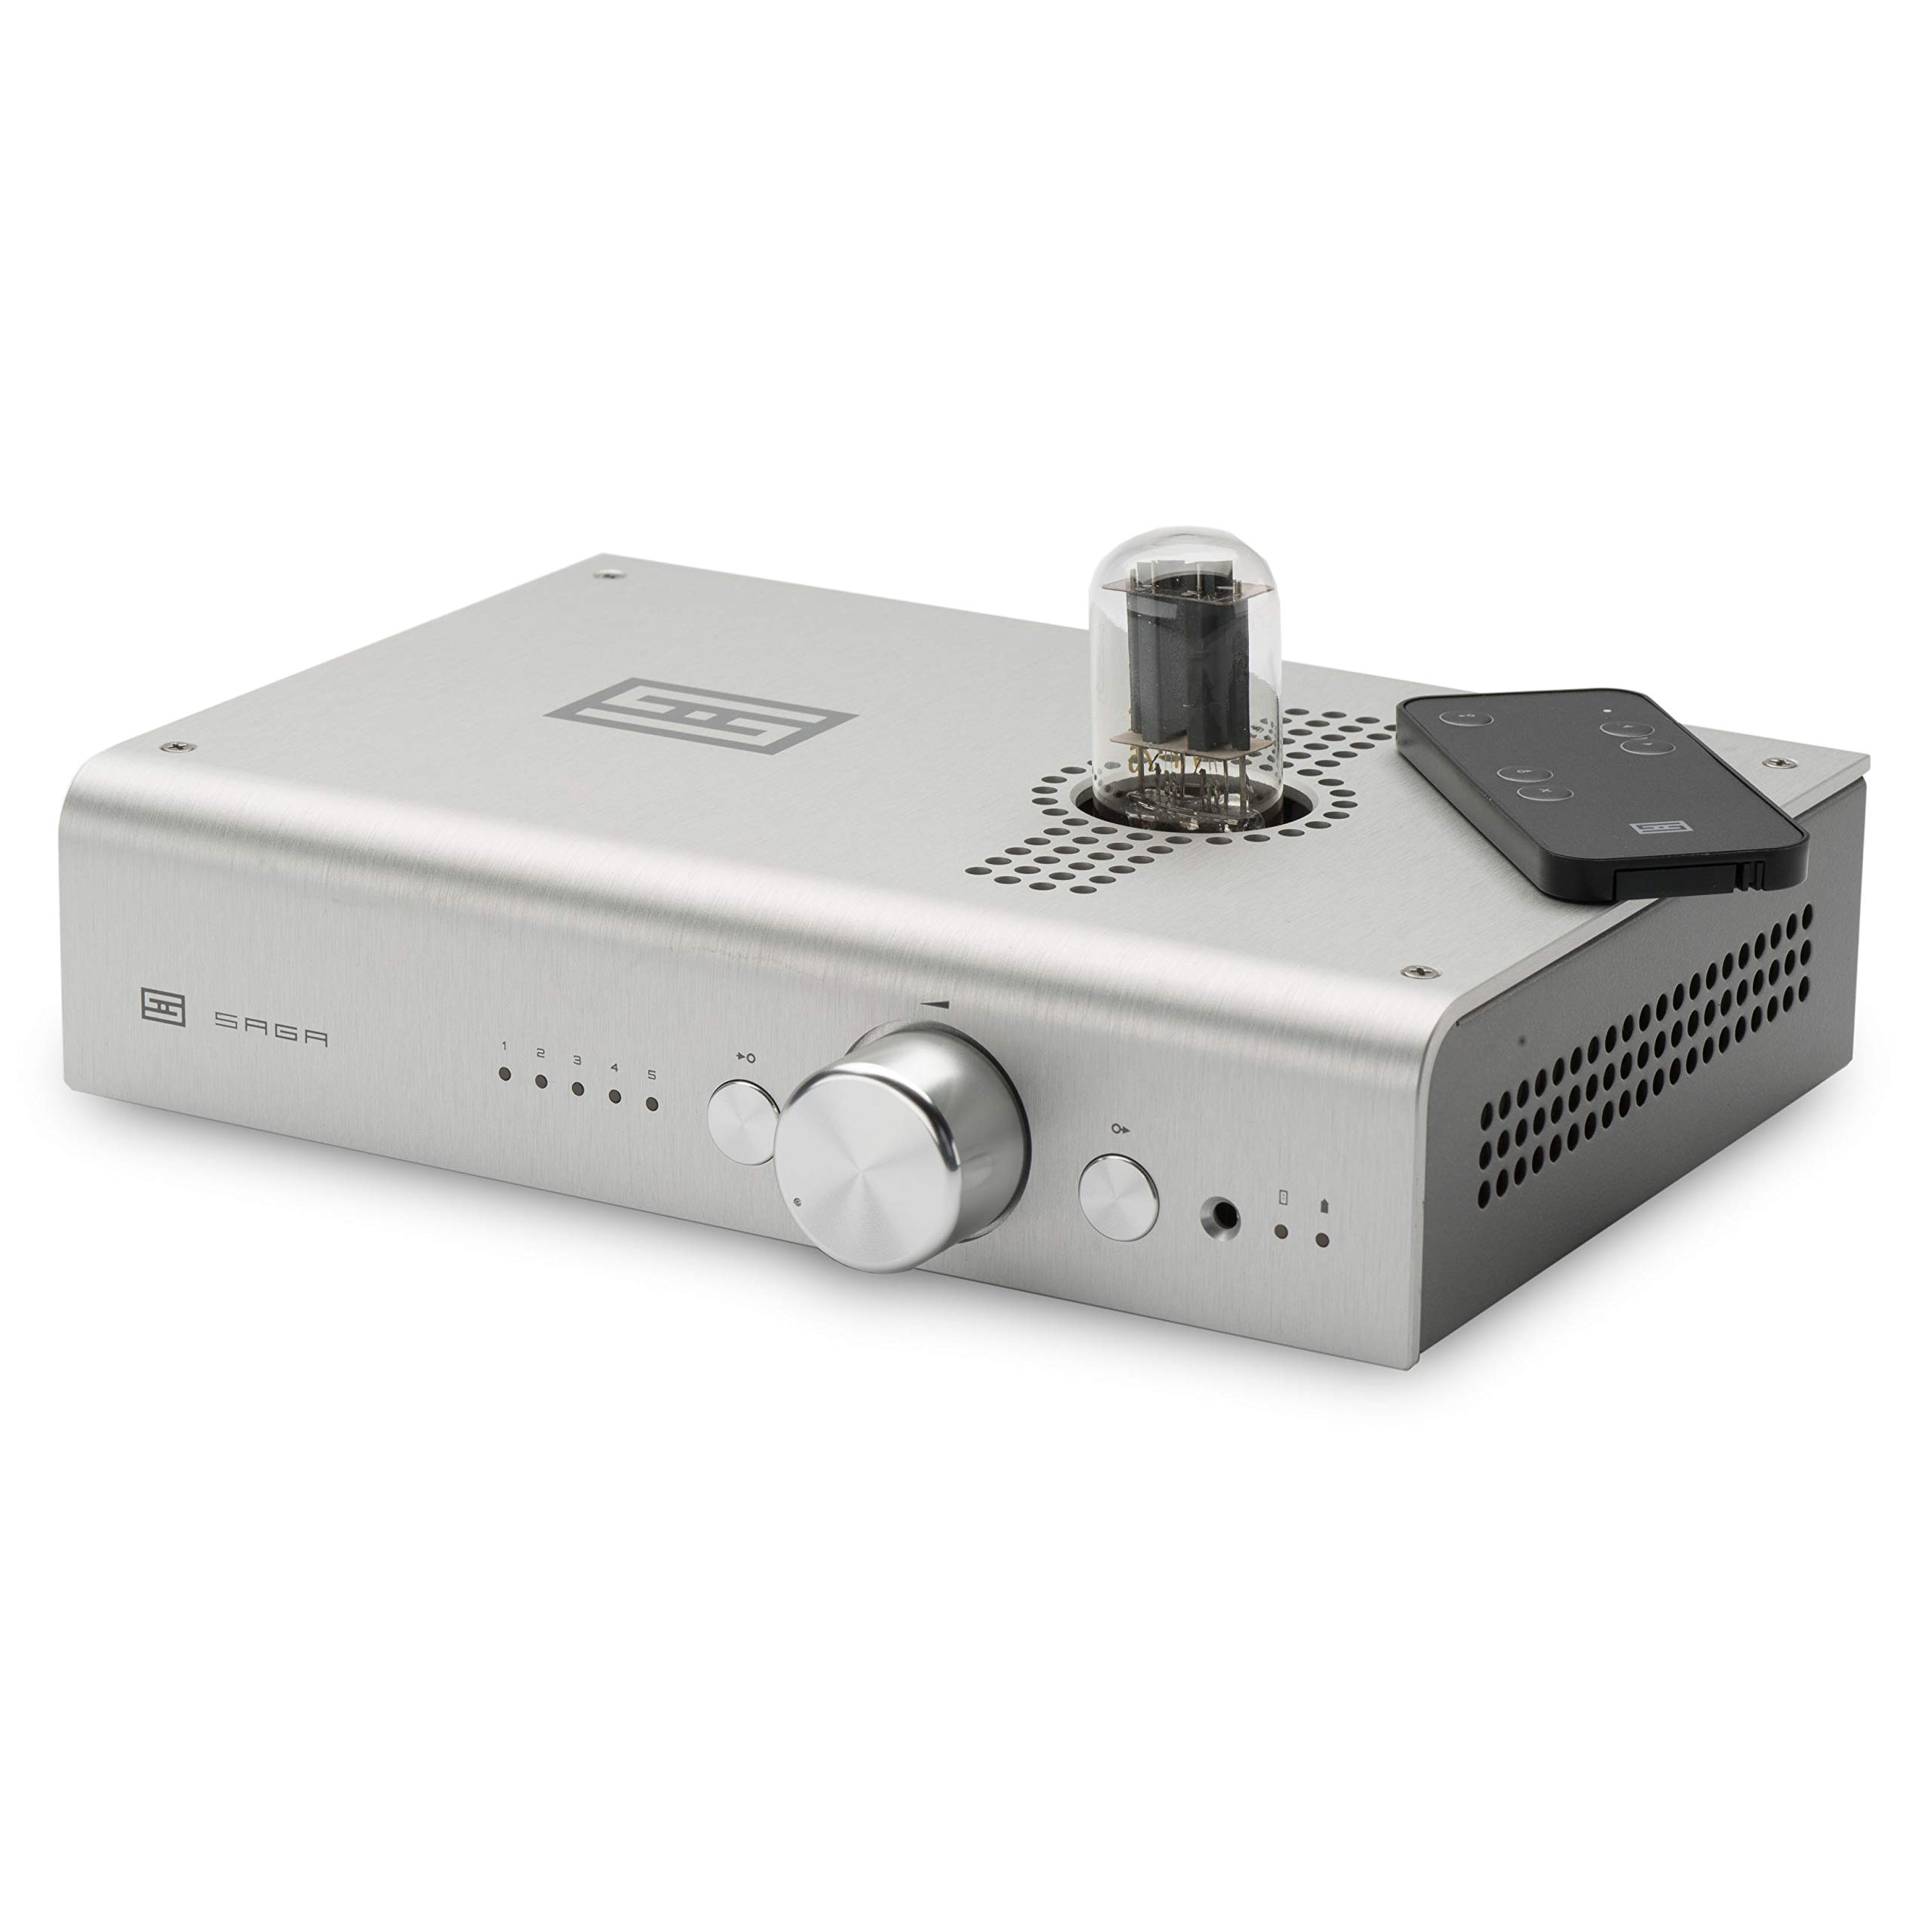 Schiit Saga Active/Passive Preamp with Remote Control by Schiit